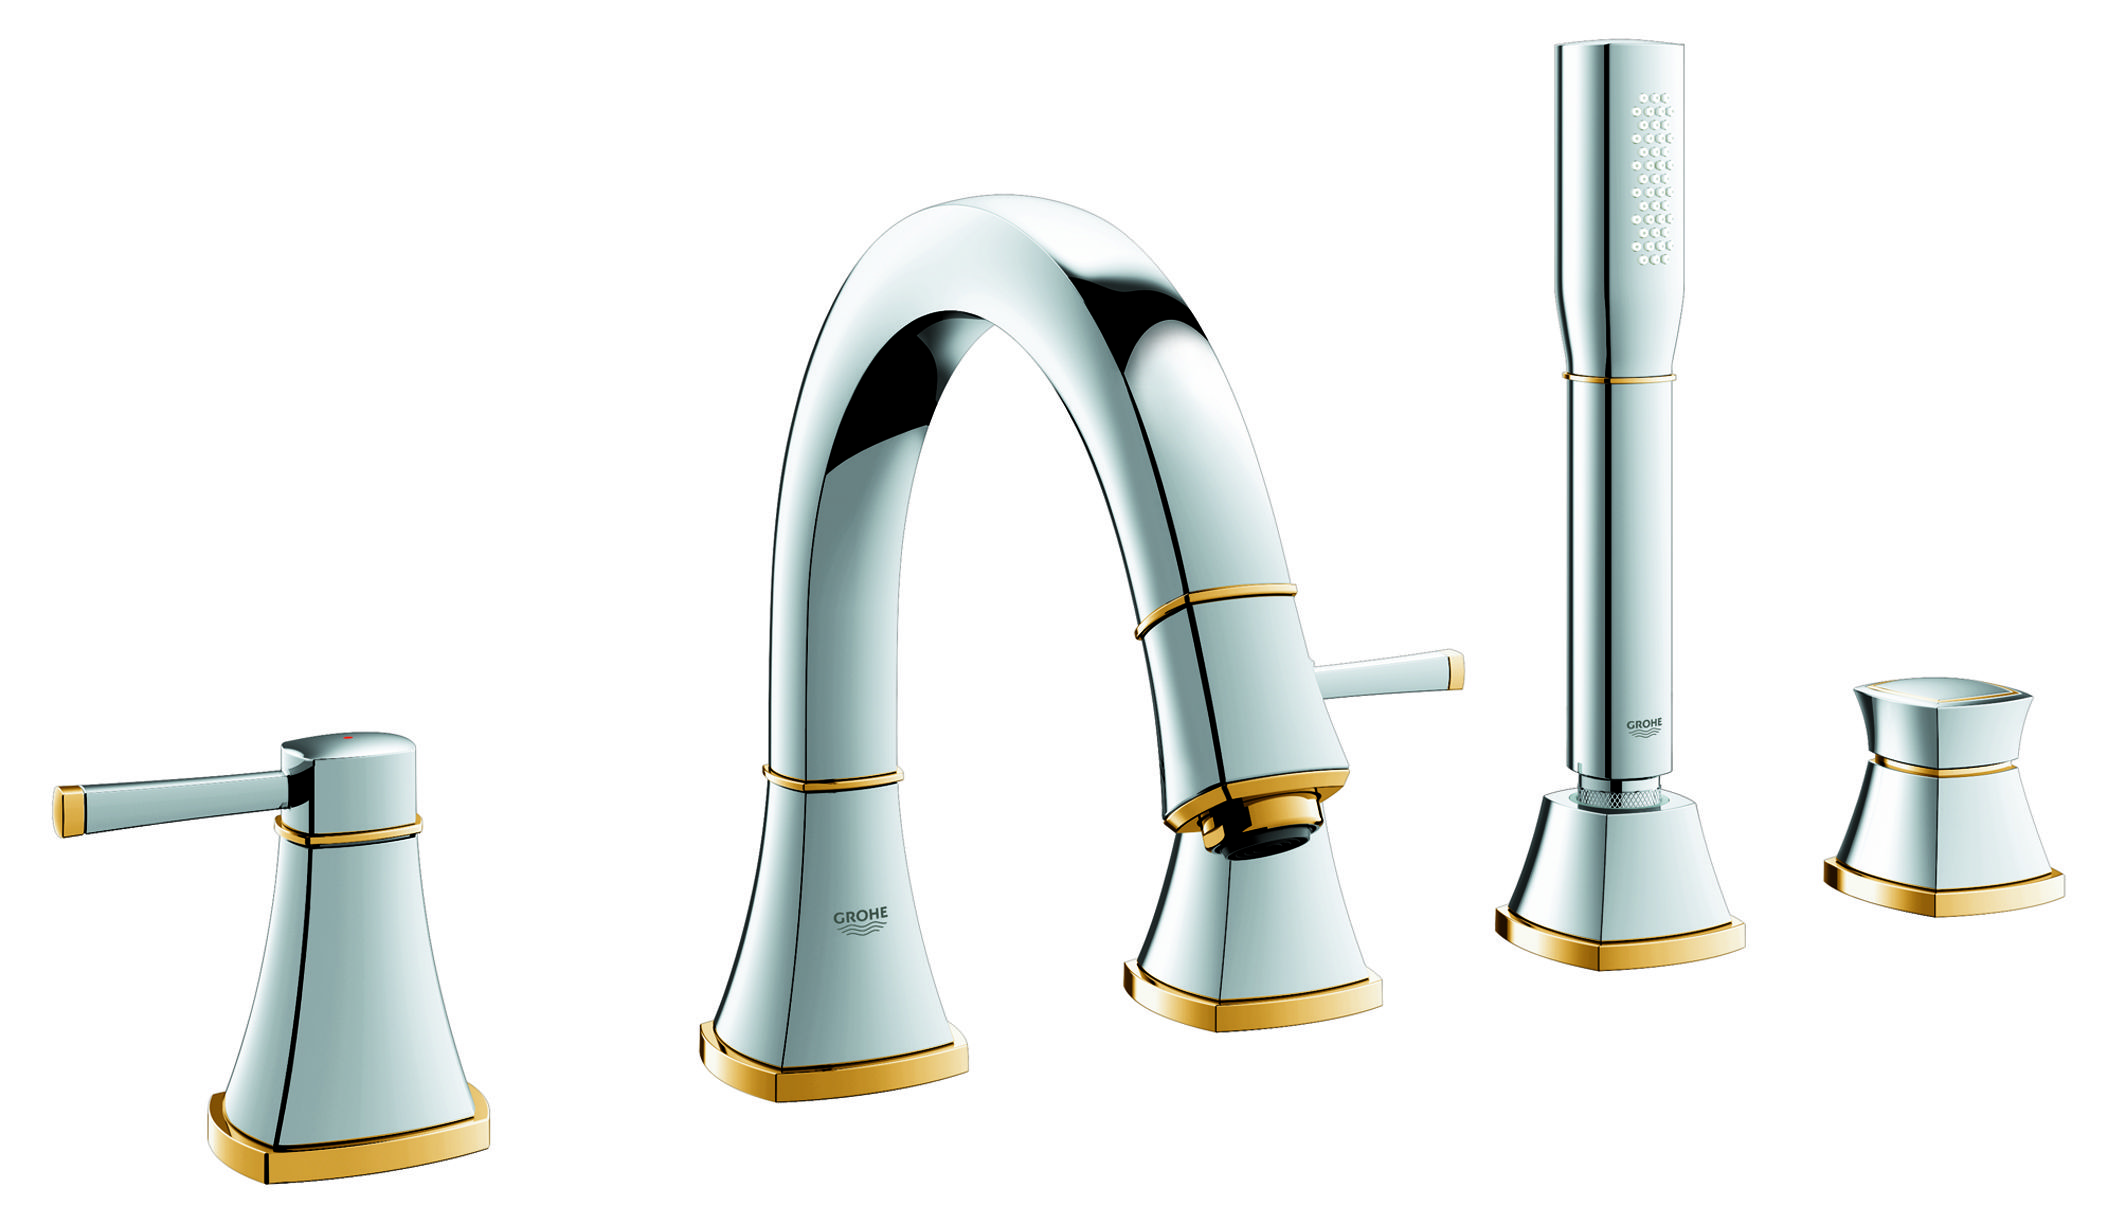 http://www.grohe-group.com/p/25_8630.html?item=1117&id_cat=76 ...